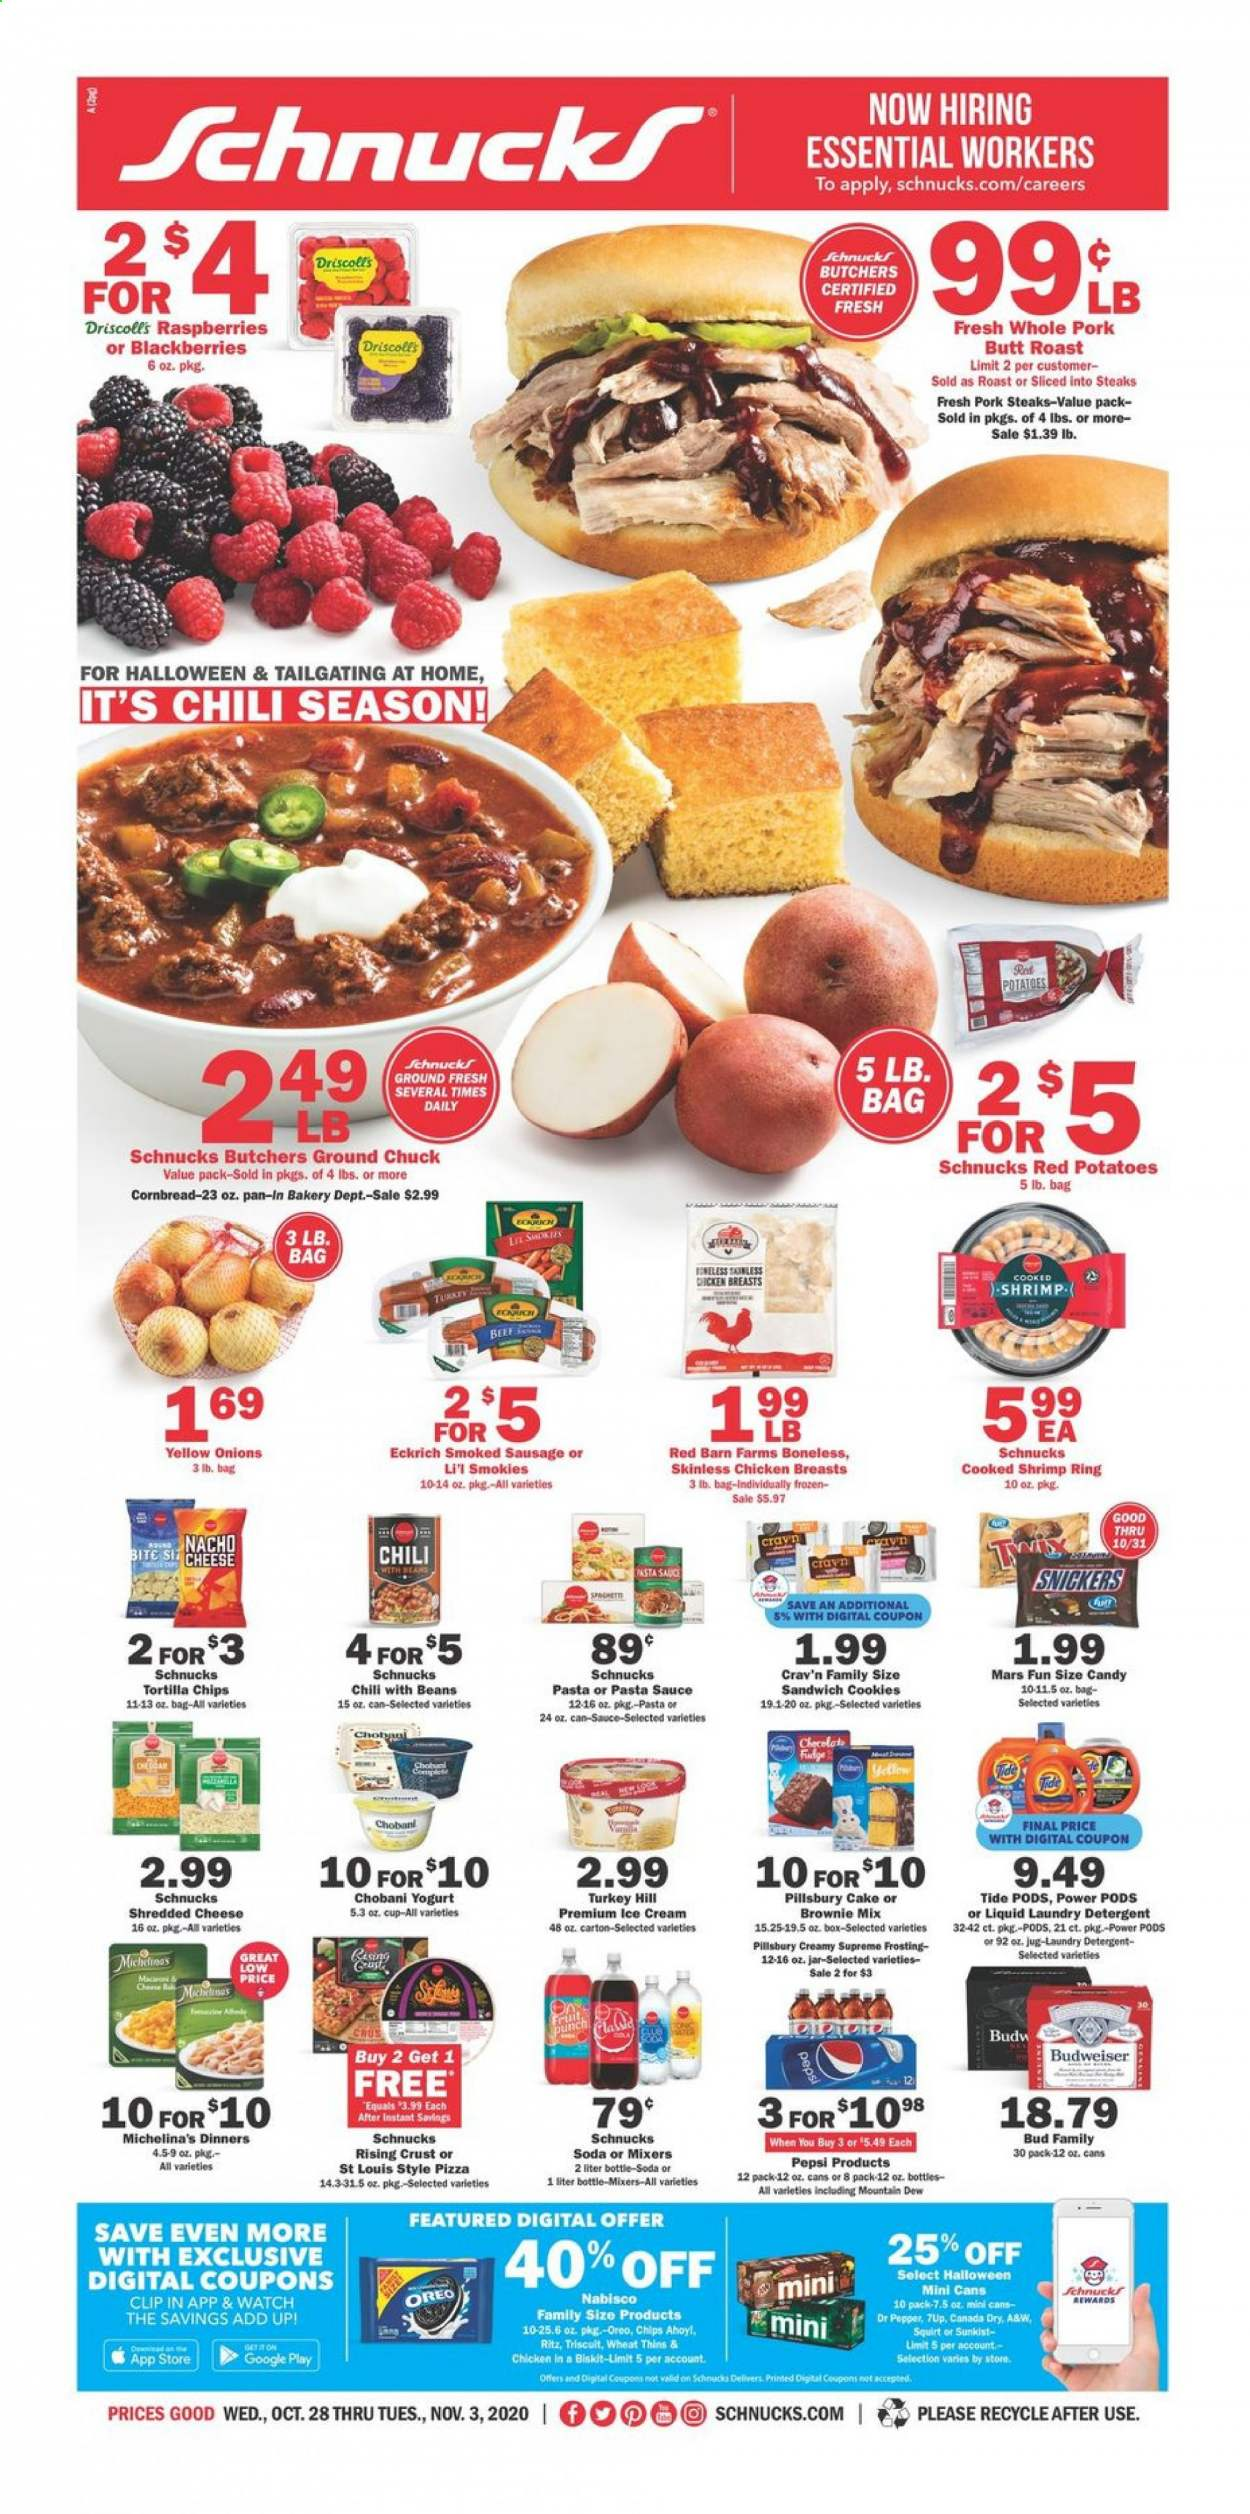 Schnucks Flyer - 10.28.2020 - 11.03.2020 - Sales products - beans, blackberries, box, brownie mix, Budweiser, Canada Dry, cookies, detergent, frosting, frozen, fudge, ground chuck, Mountain Dew, raspberries, sandwich cookies, sausage, shredded cheese, smoked sausage, Tide, tortilla chips, turkey, watch, yellow onions, ice cream, jar, pillsbury cake, pizza, pork meat, potatoes, chicken, chicken breast, pan, pasta sauce, Pepsi, onion, Oreo, chips, soda, cheese, cake, candy, sandwich, pepper, pasta, punch, sauce, Snickers, Mars, jug, Fruit, brownie, laundry detergent, corn bread, shrimps. Page 1.